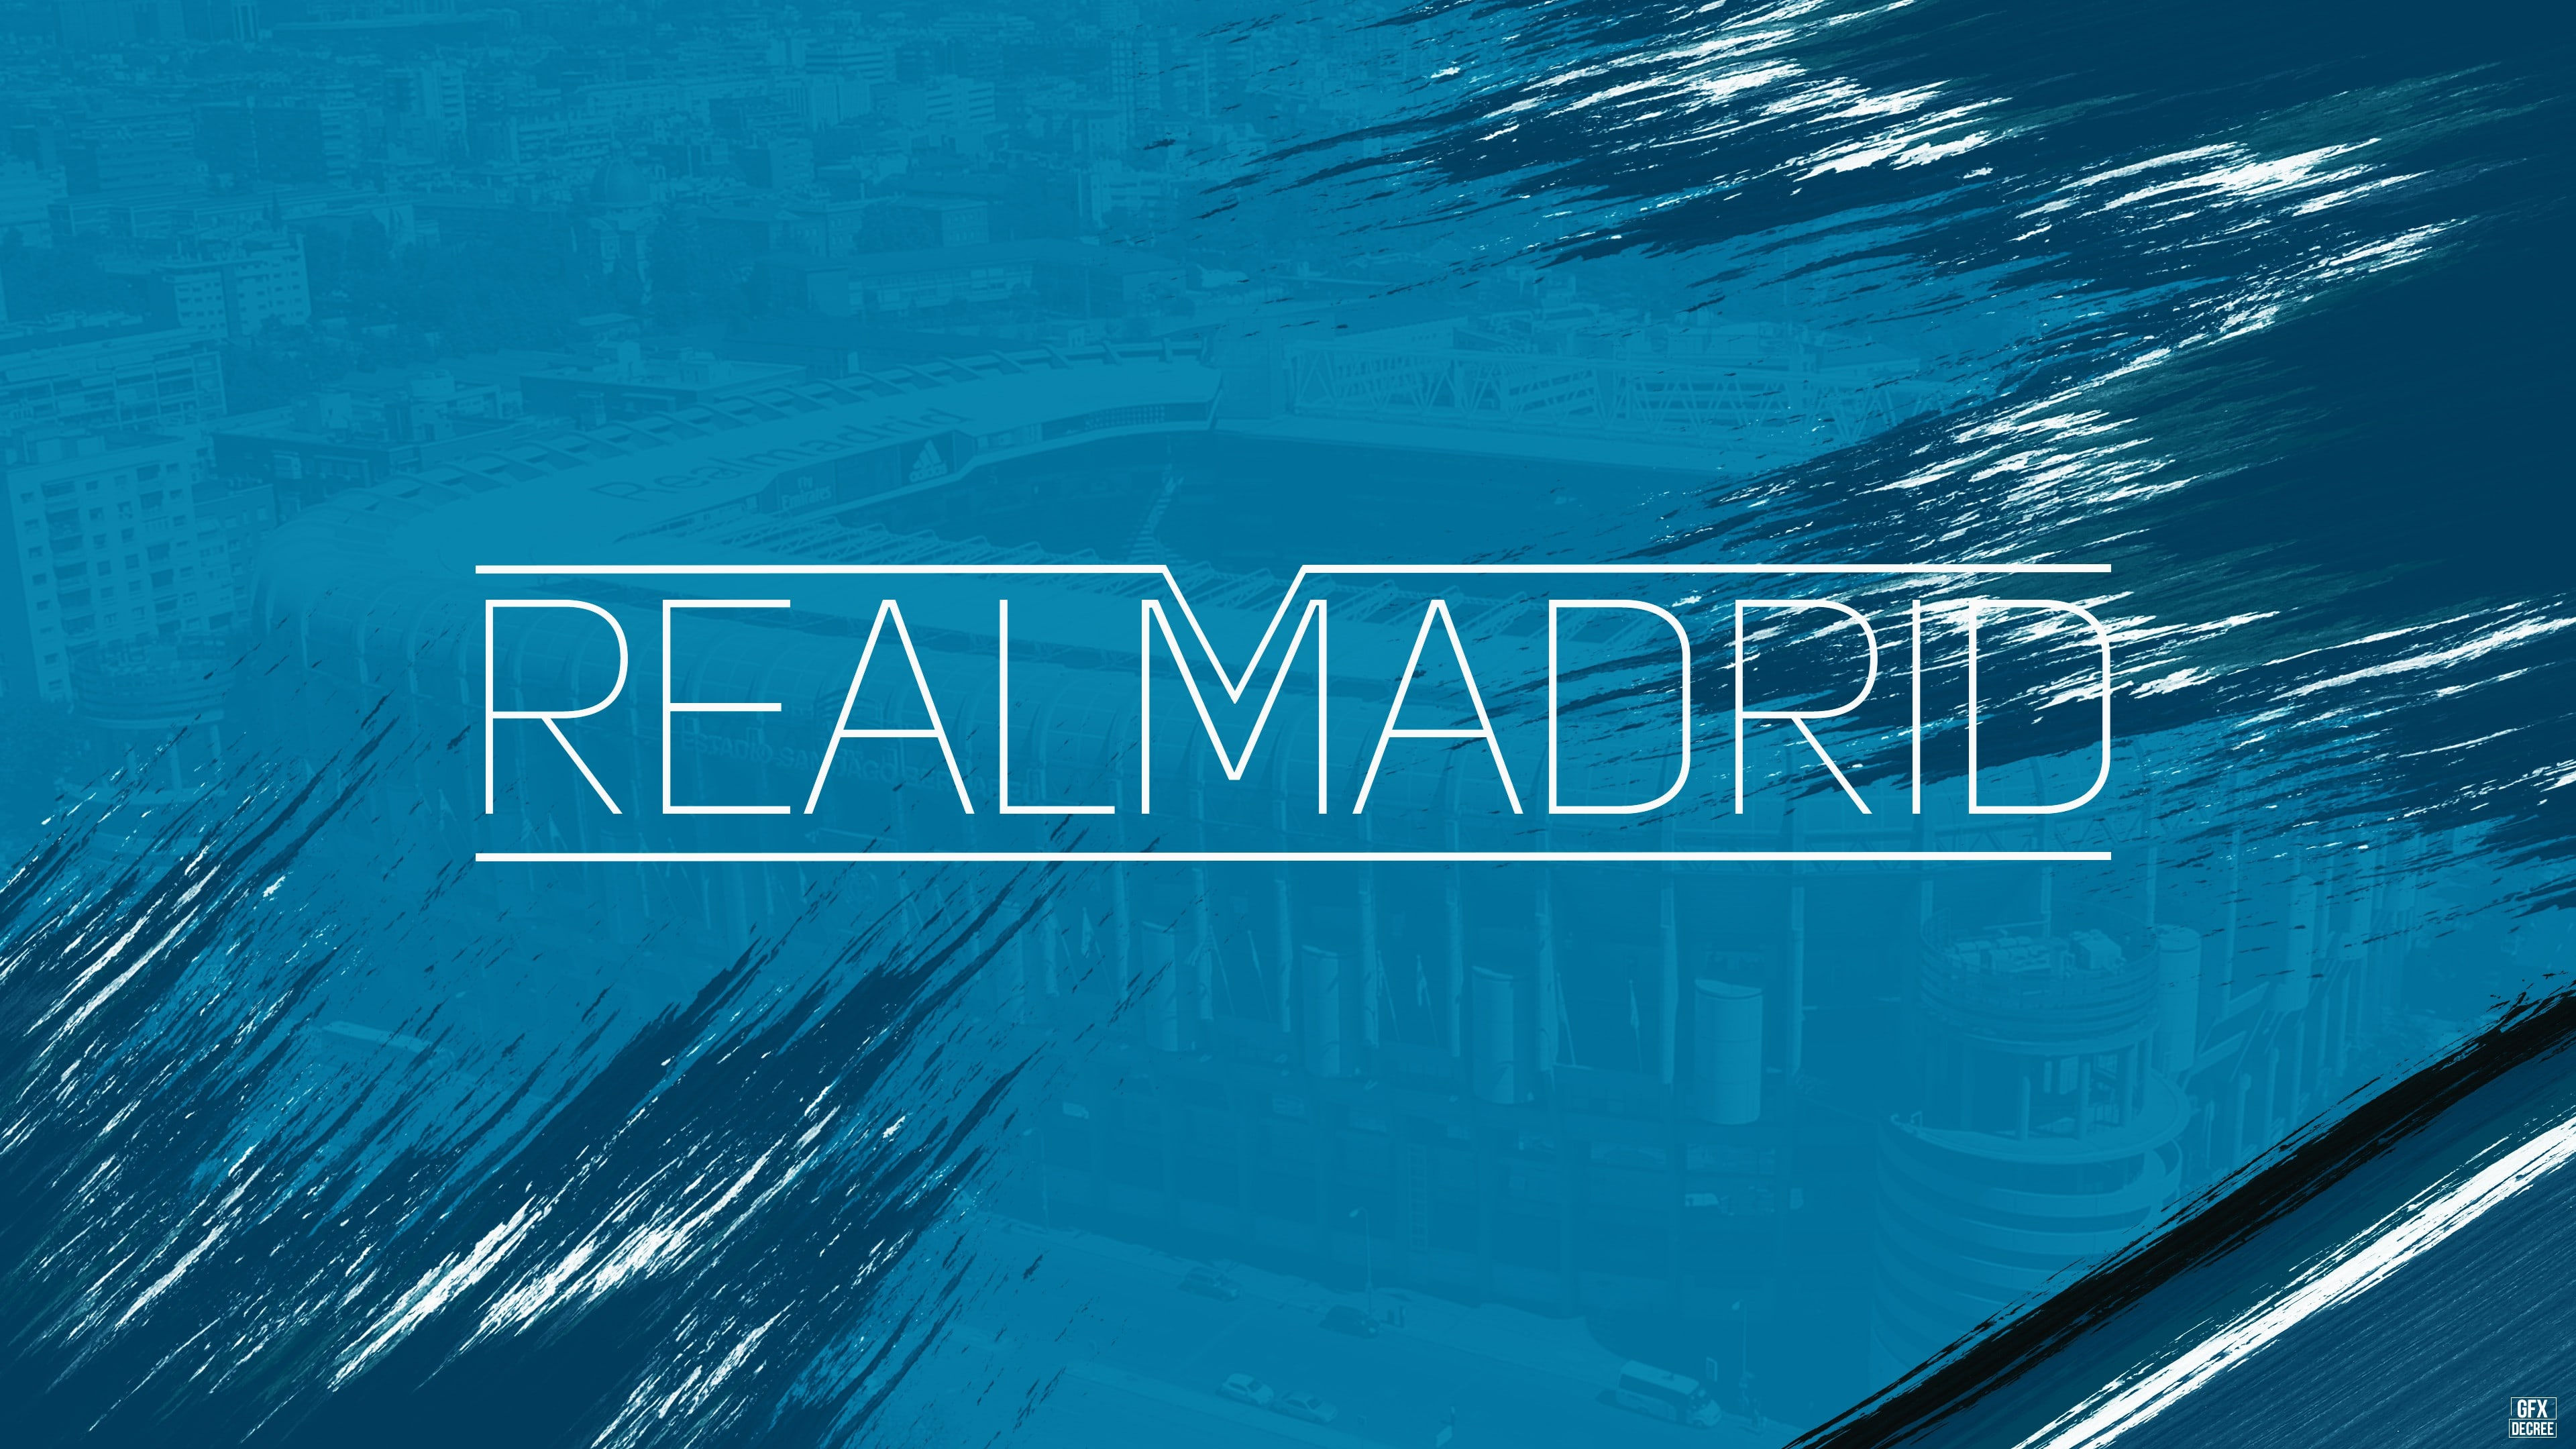 real madrid cf football club 1194 Wallpapers and Stock 3840x2160